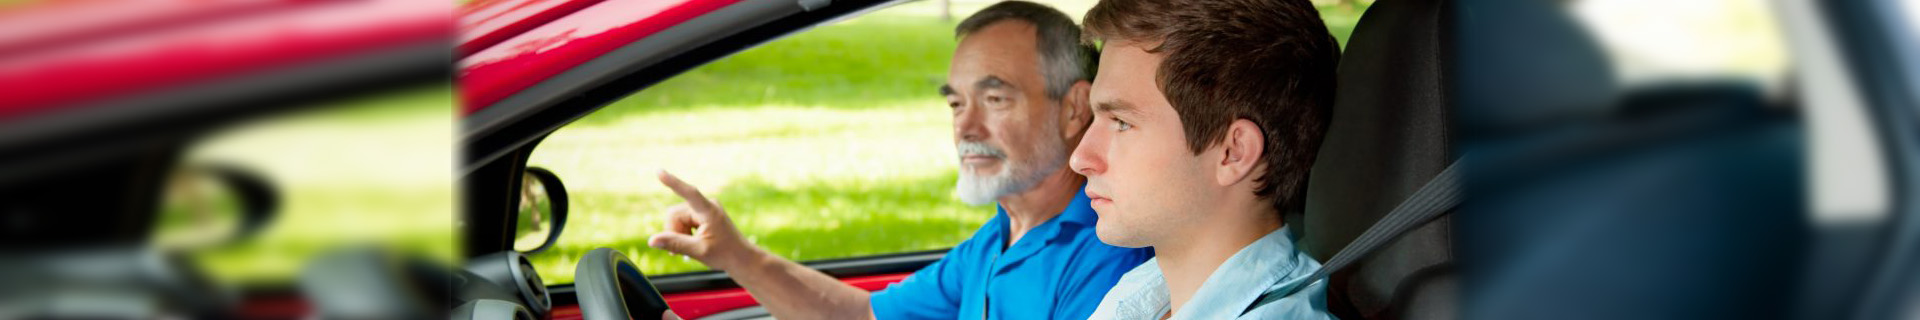 Tips To Improve Your Driving Skills To Help You Pass Your Driving Test In California